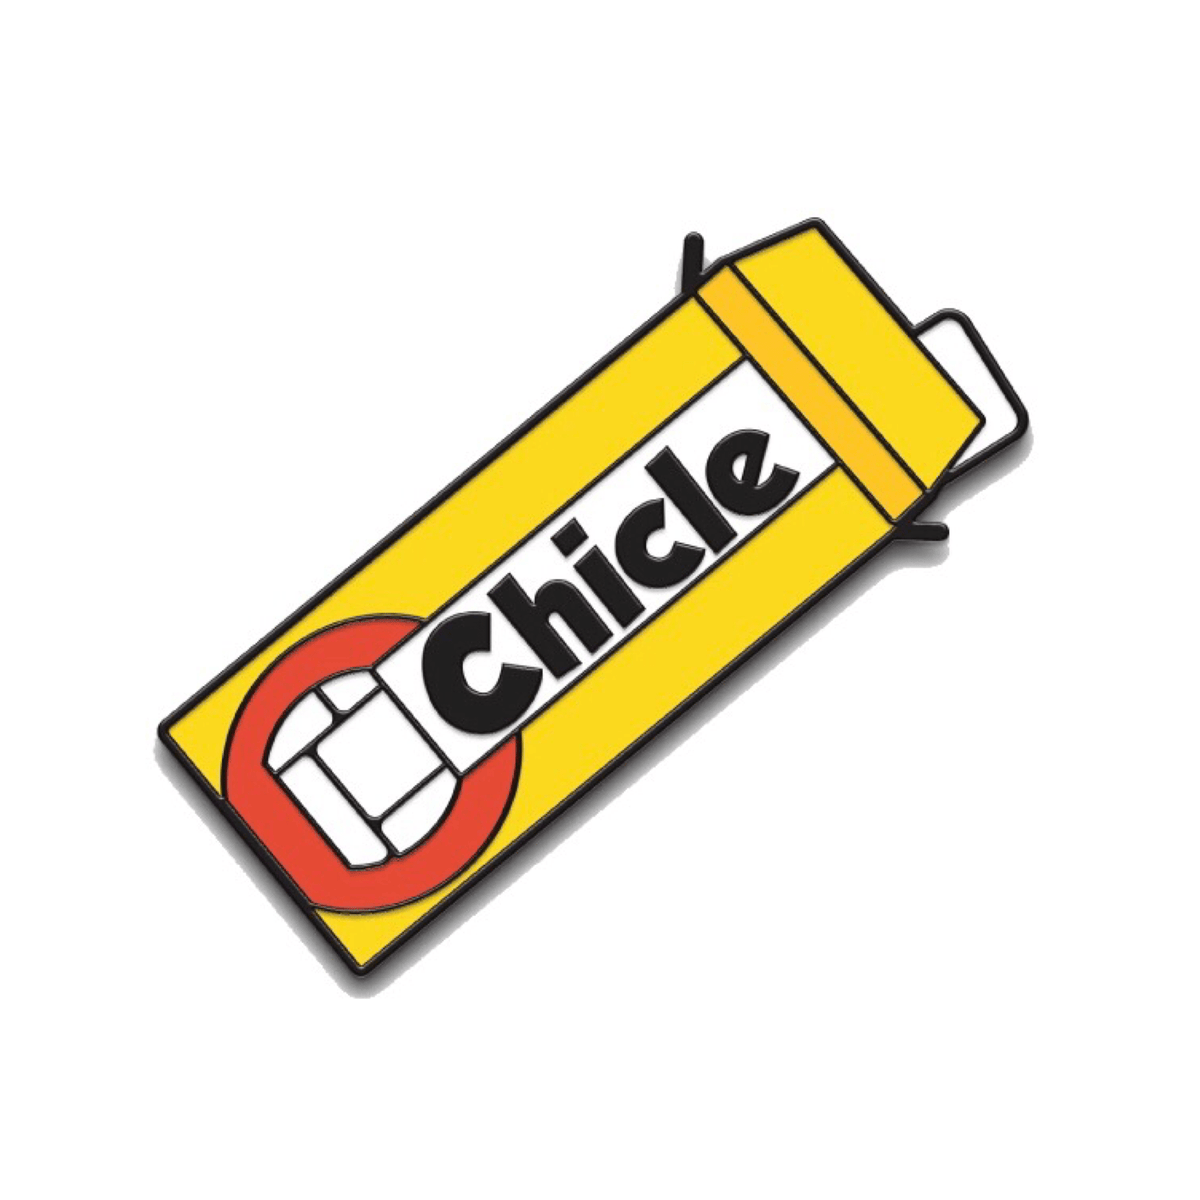 chicle-pin-pocket.jpg